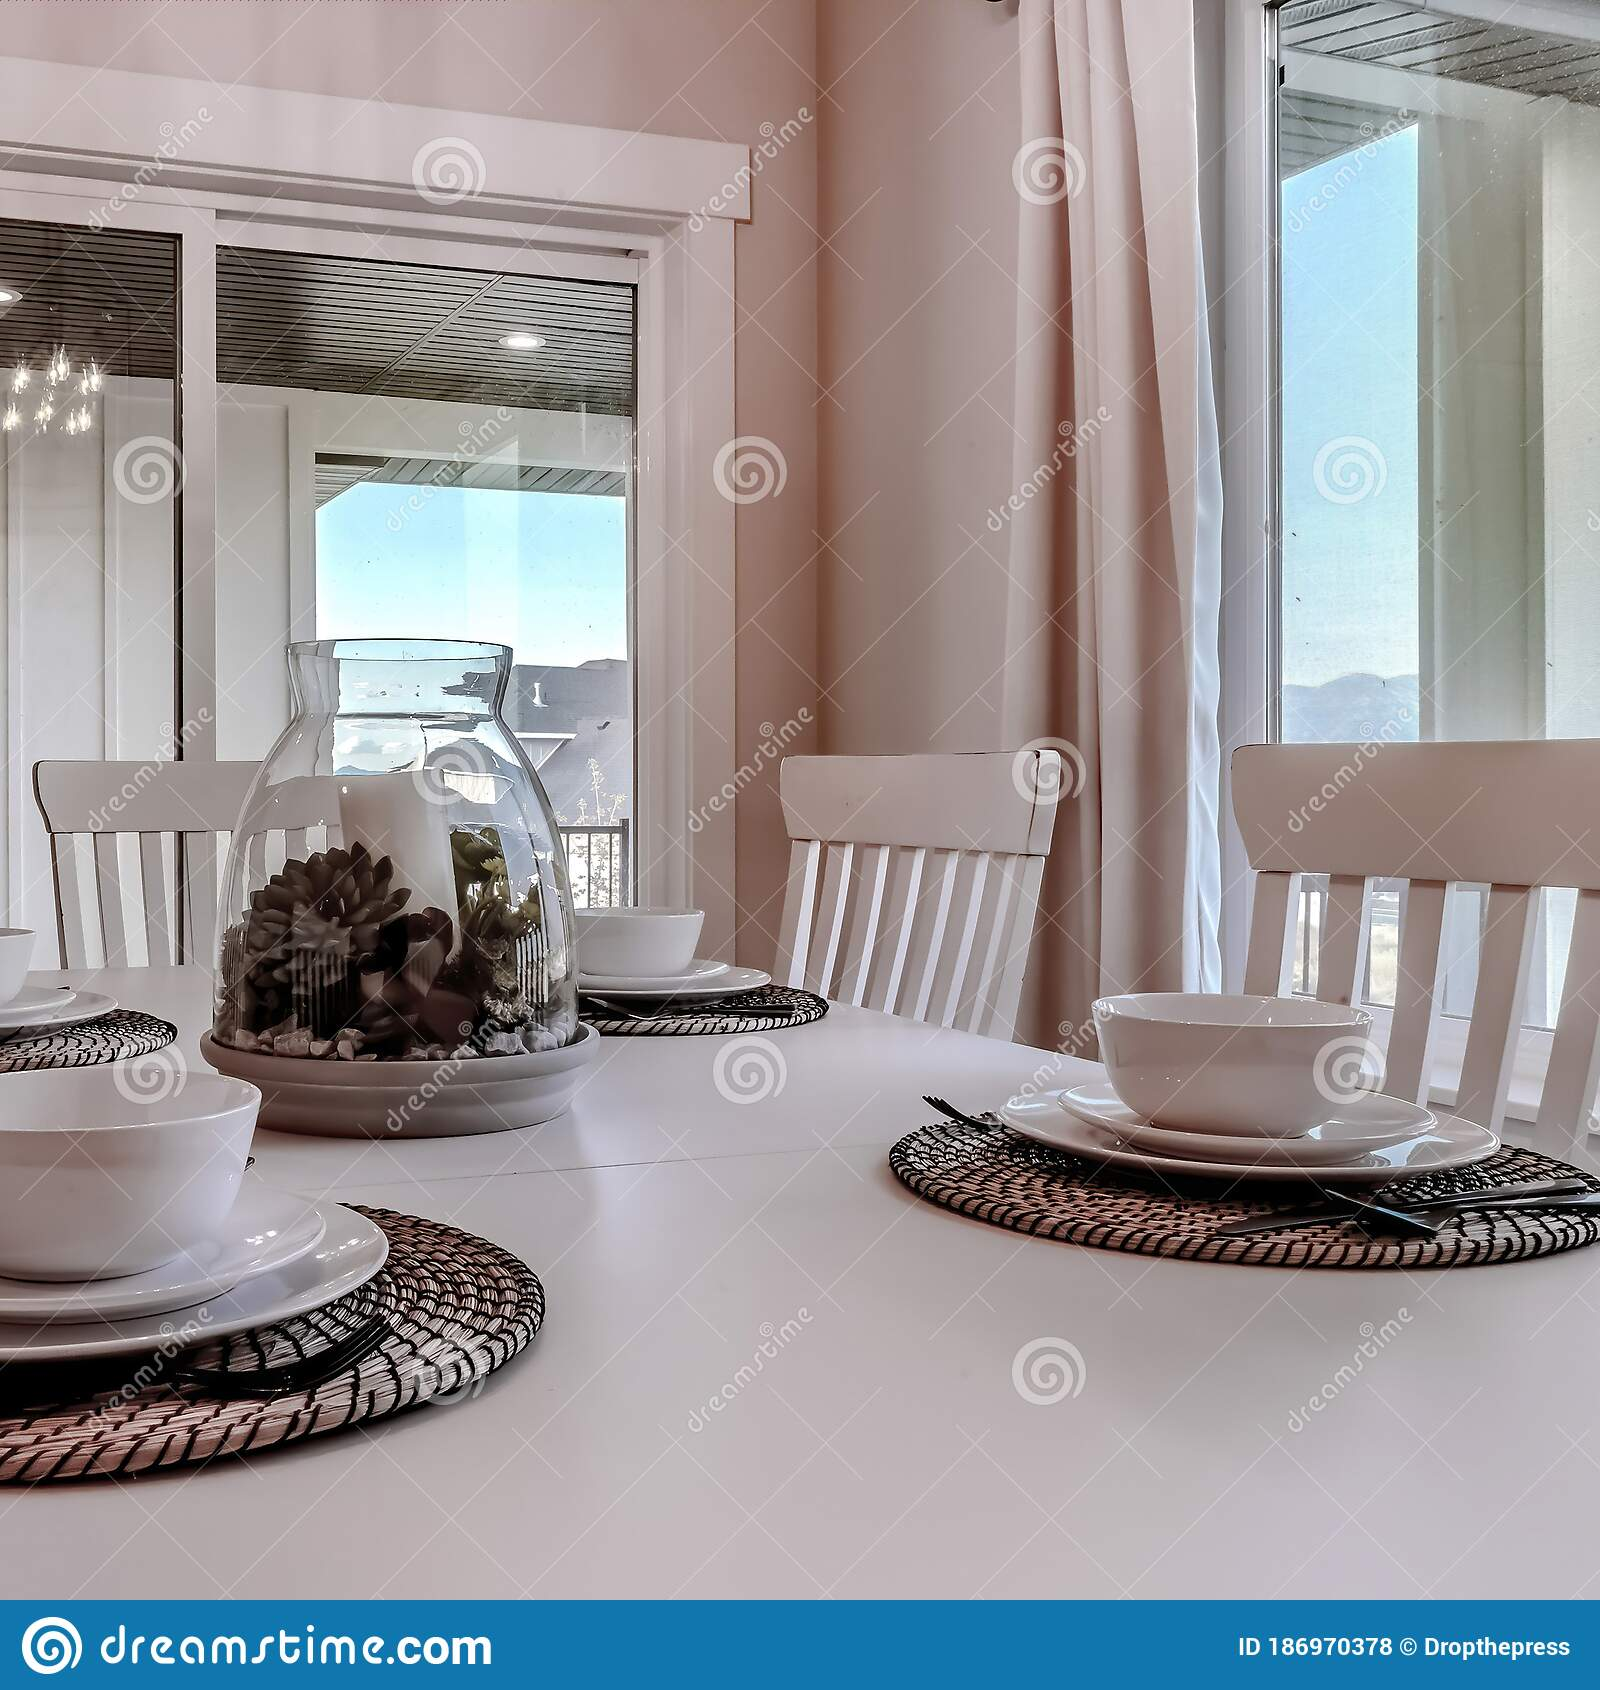 Square Frame Dining Table With Chairs And Tableware Arranged Around A Decorative Centerpiece Stock Photo Image Of Room Residential 186970378